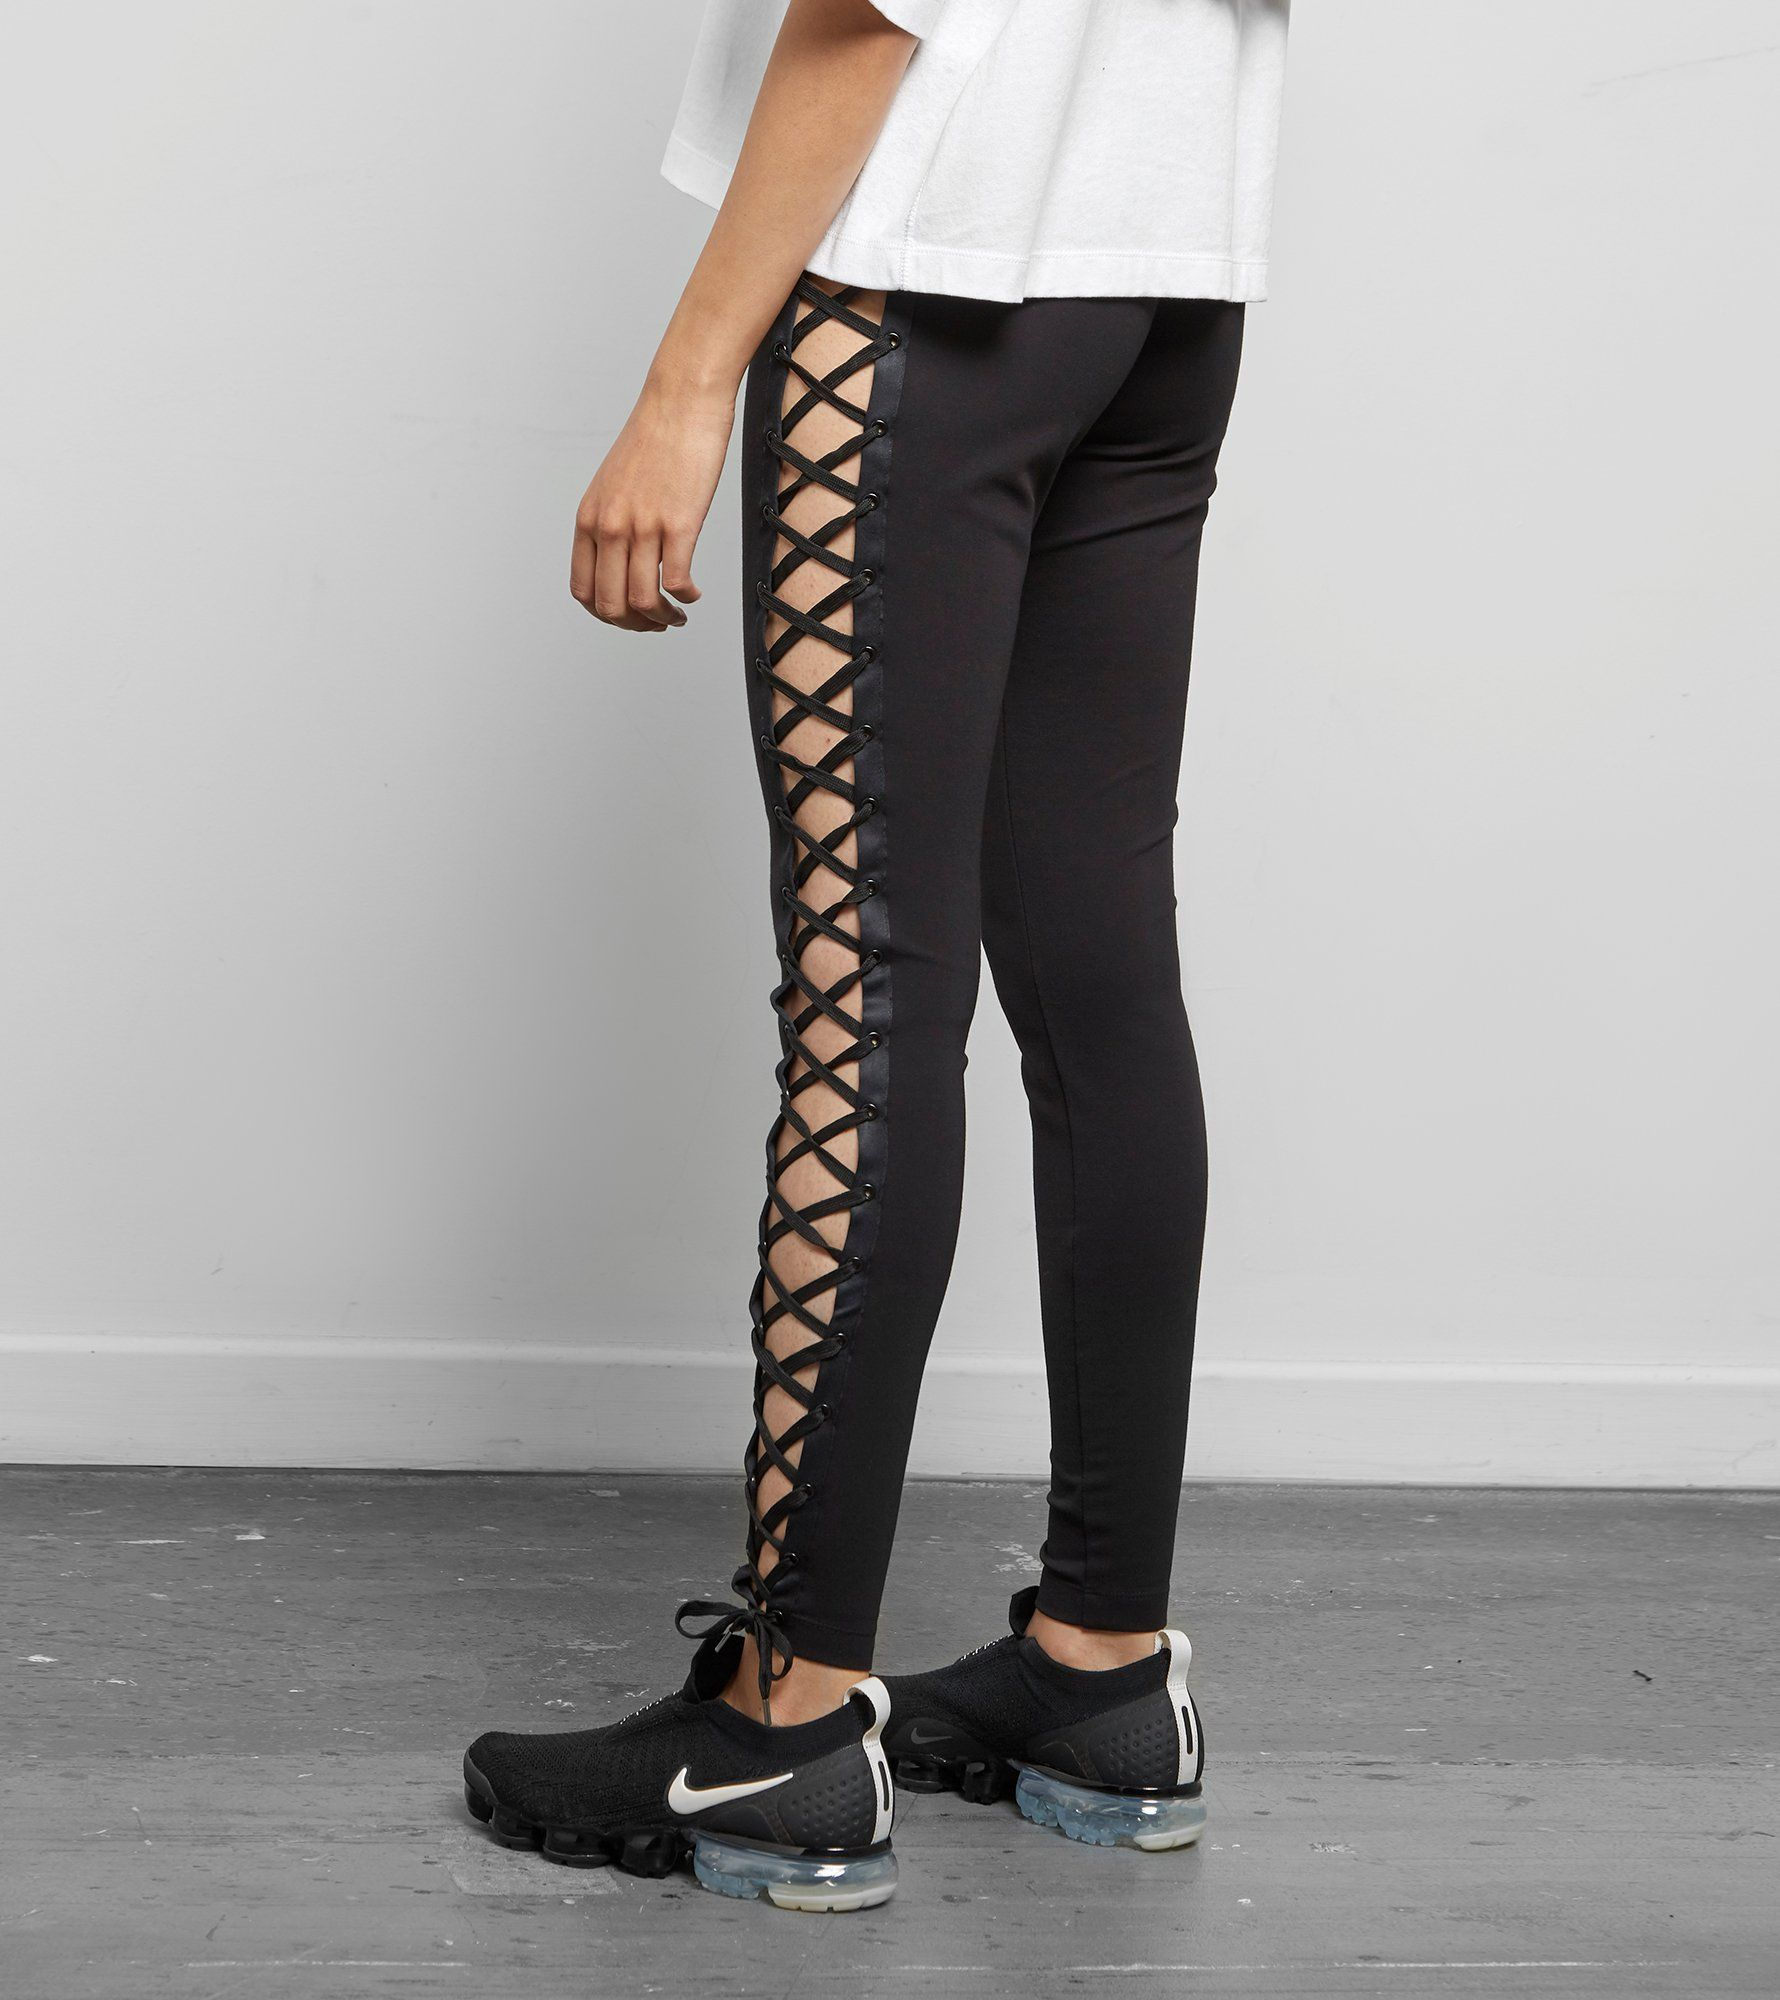 PUMA x Fenty Lace Leggings